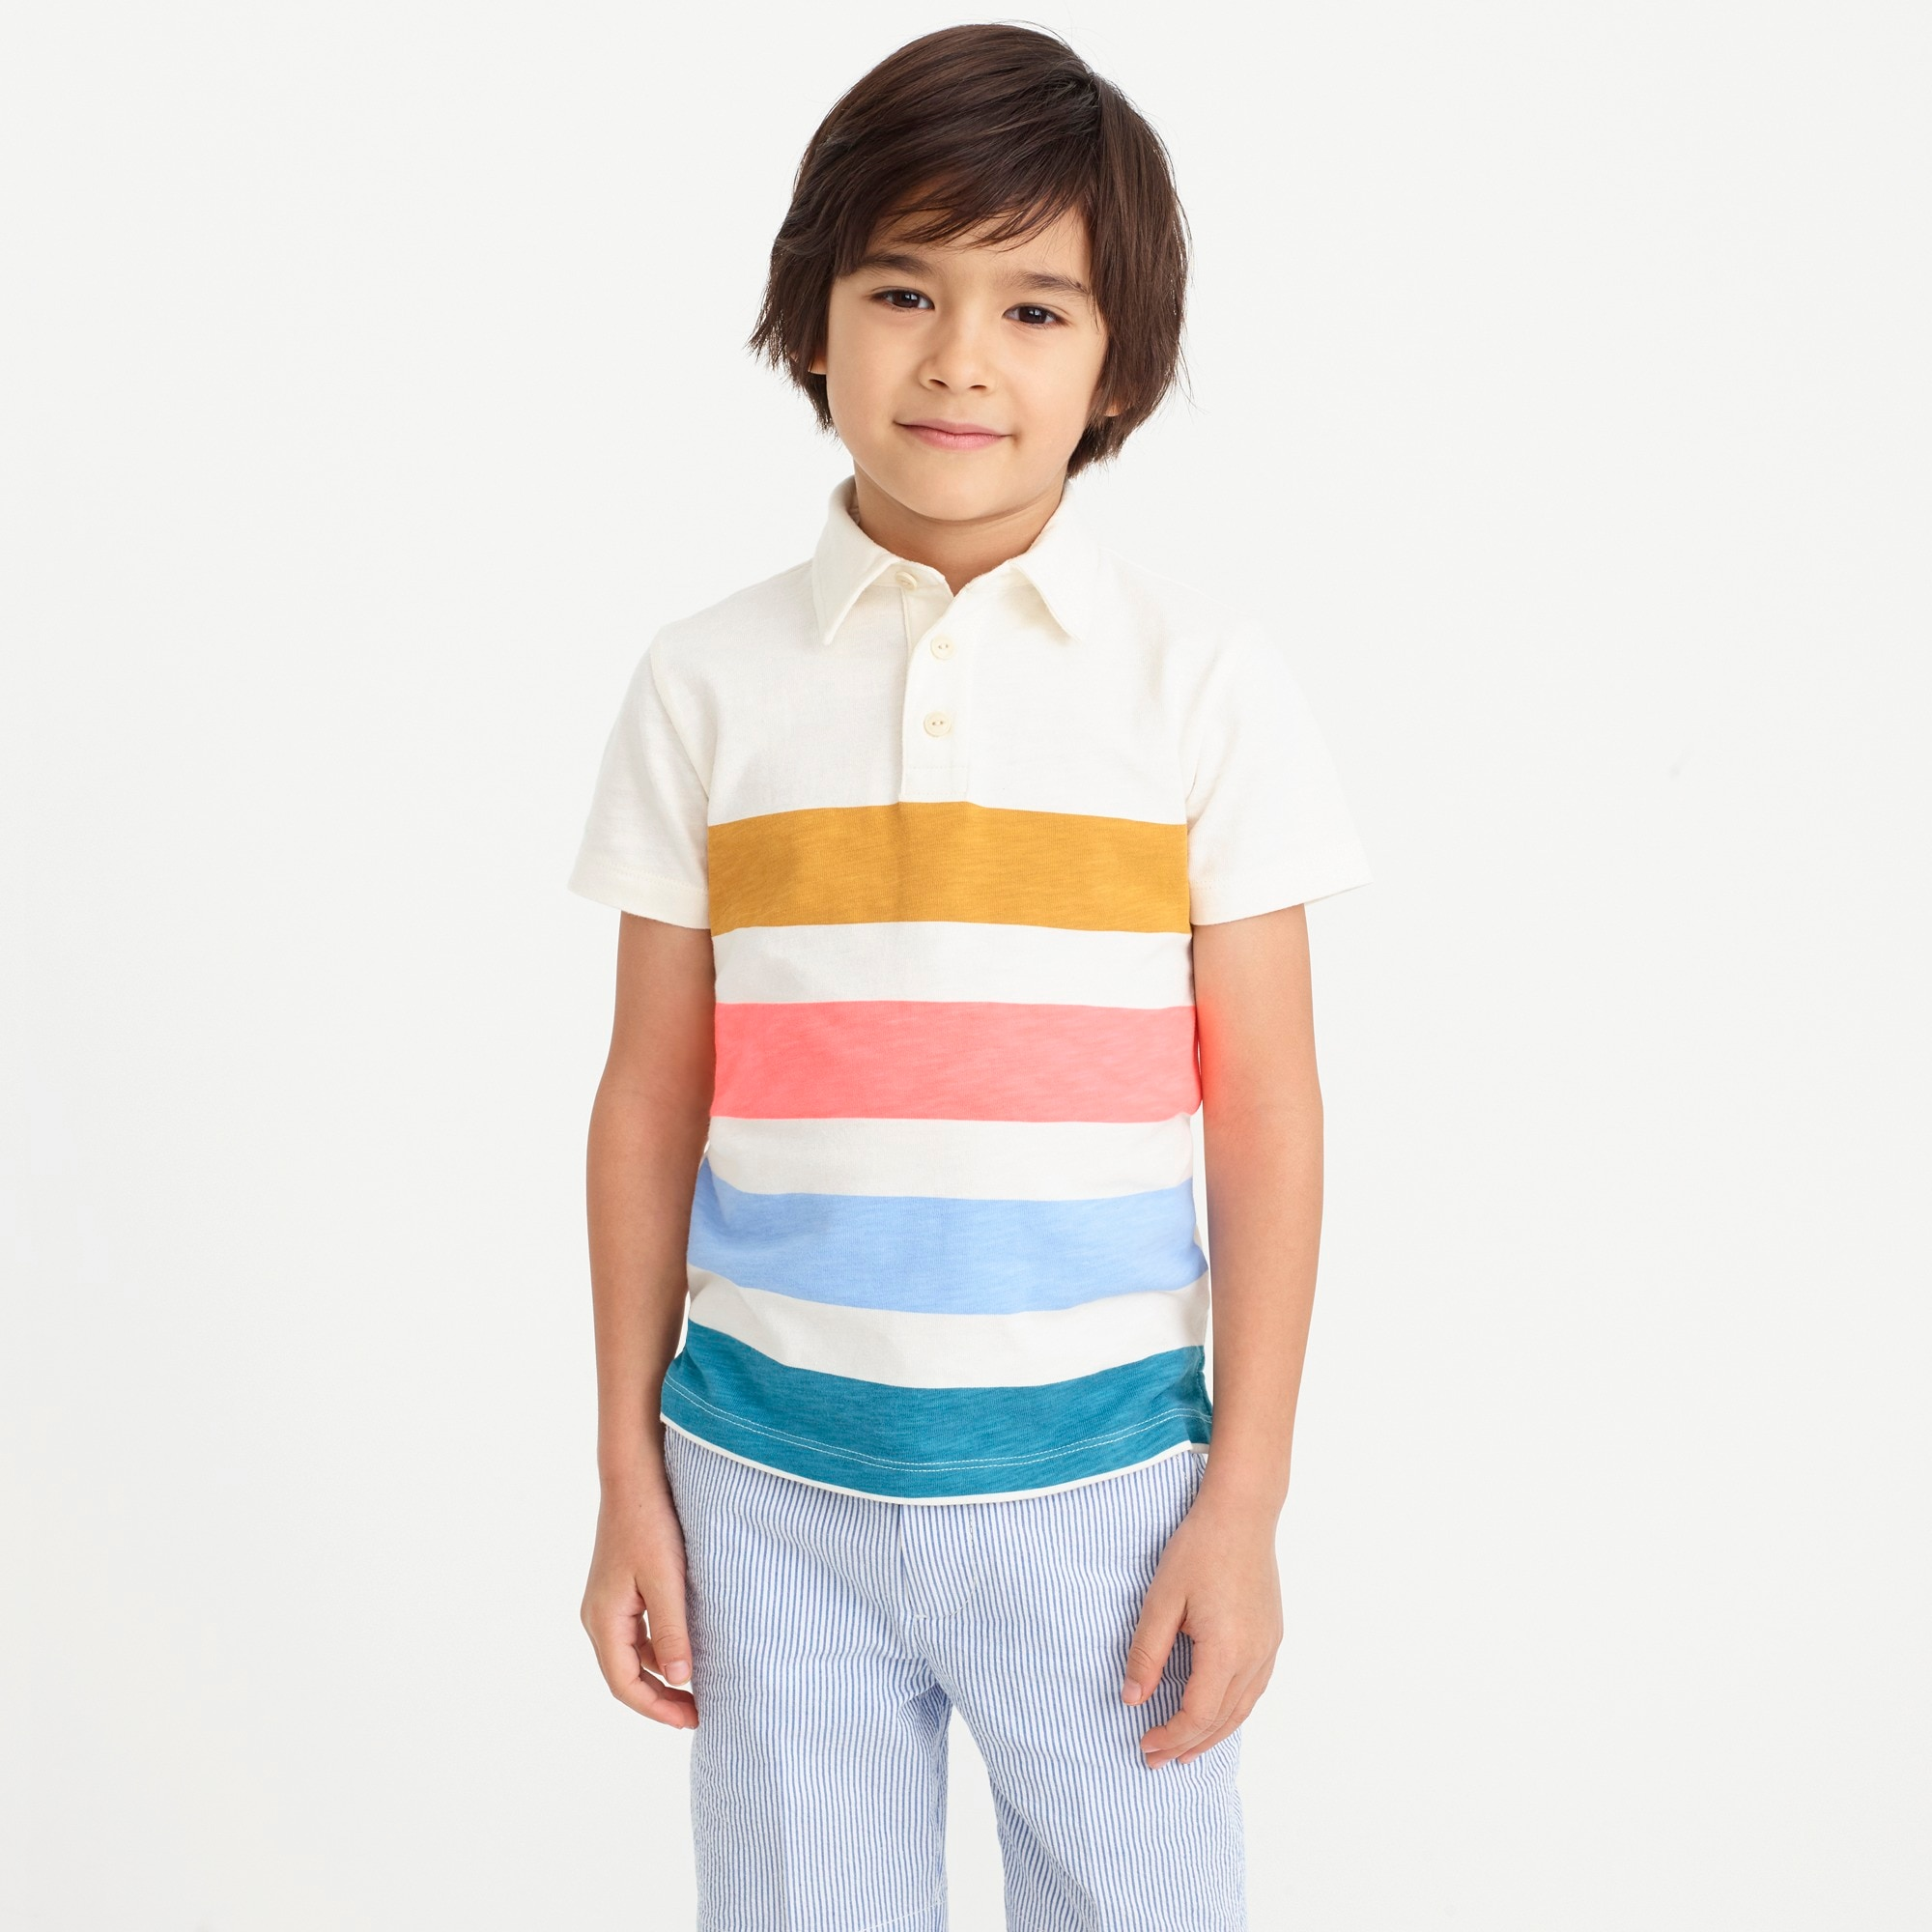 Boys' short-sleeve broad stripe polo shirt factoryboys new arrivals c